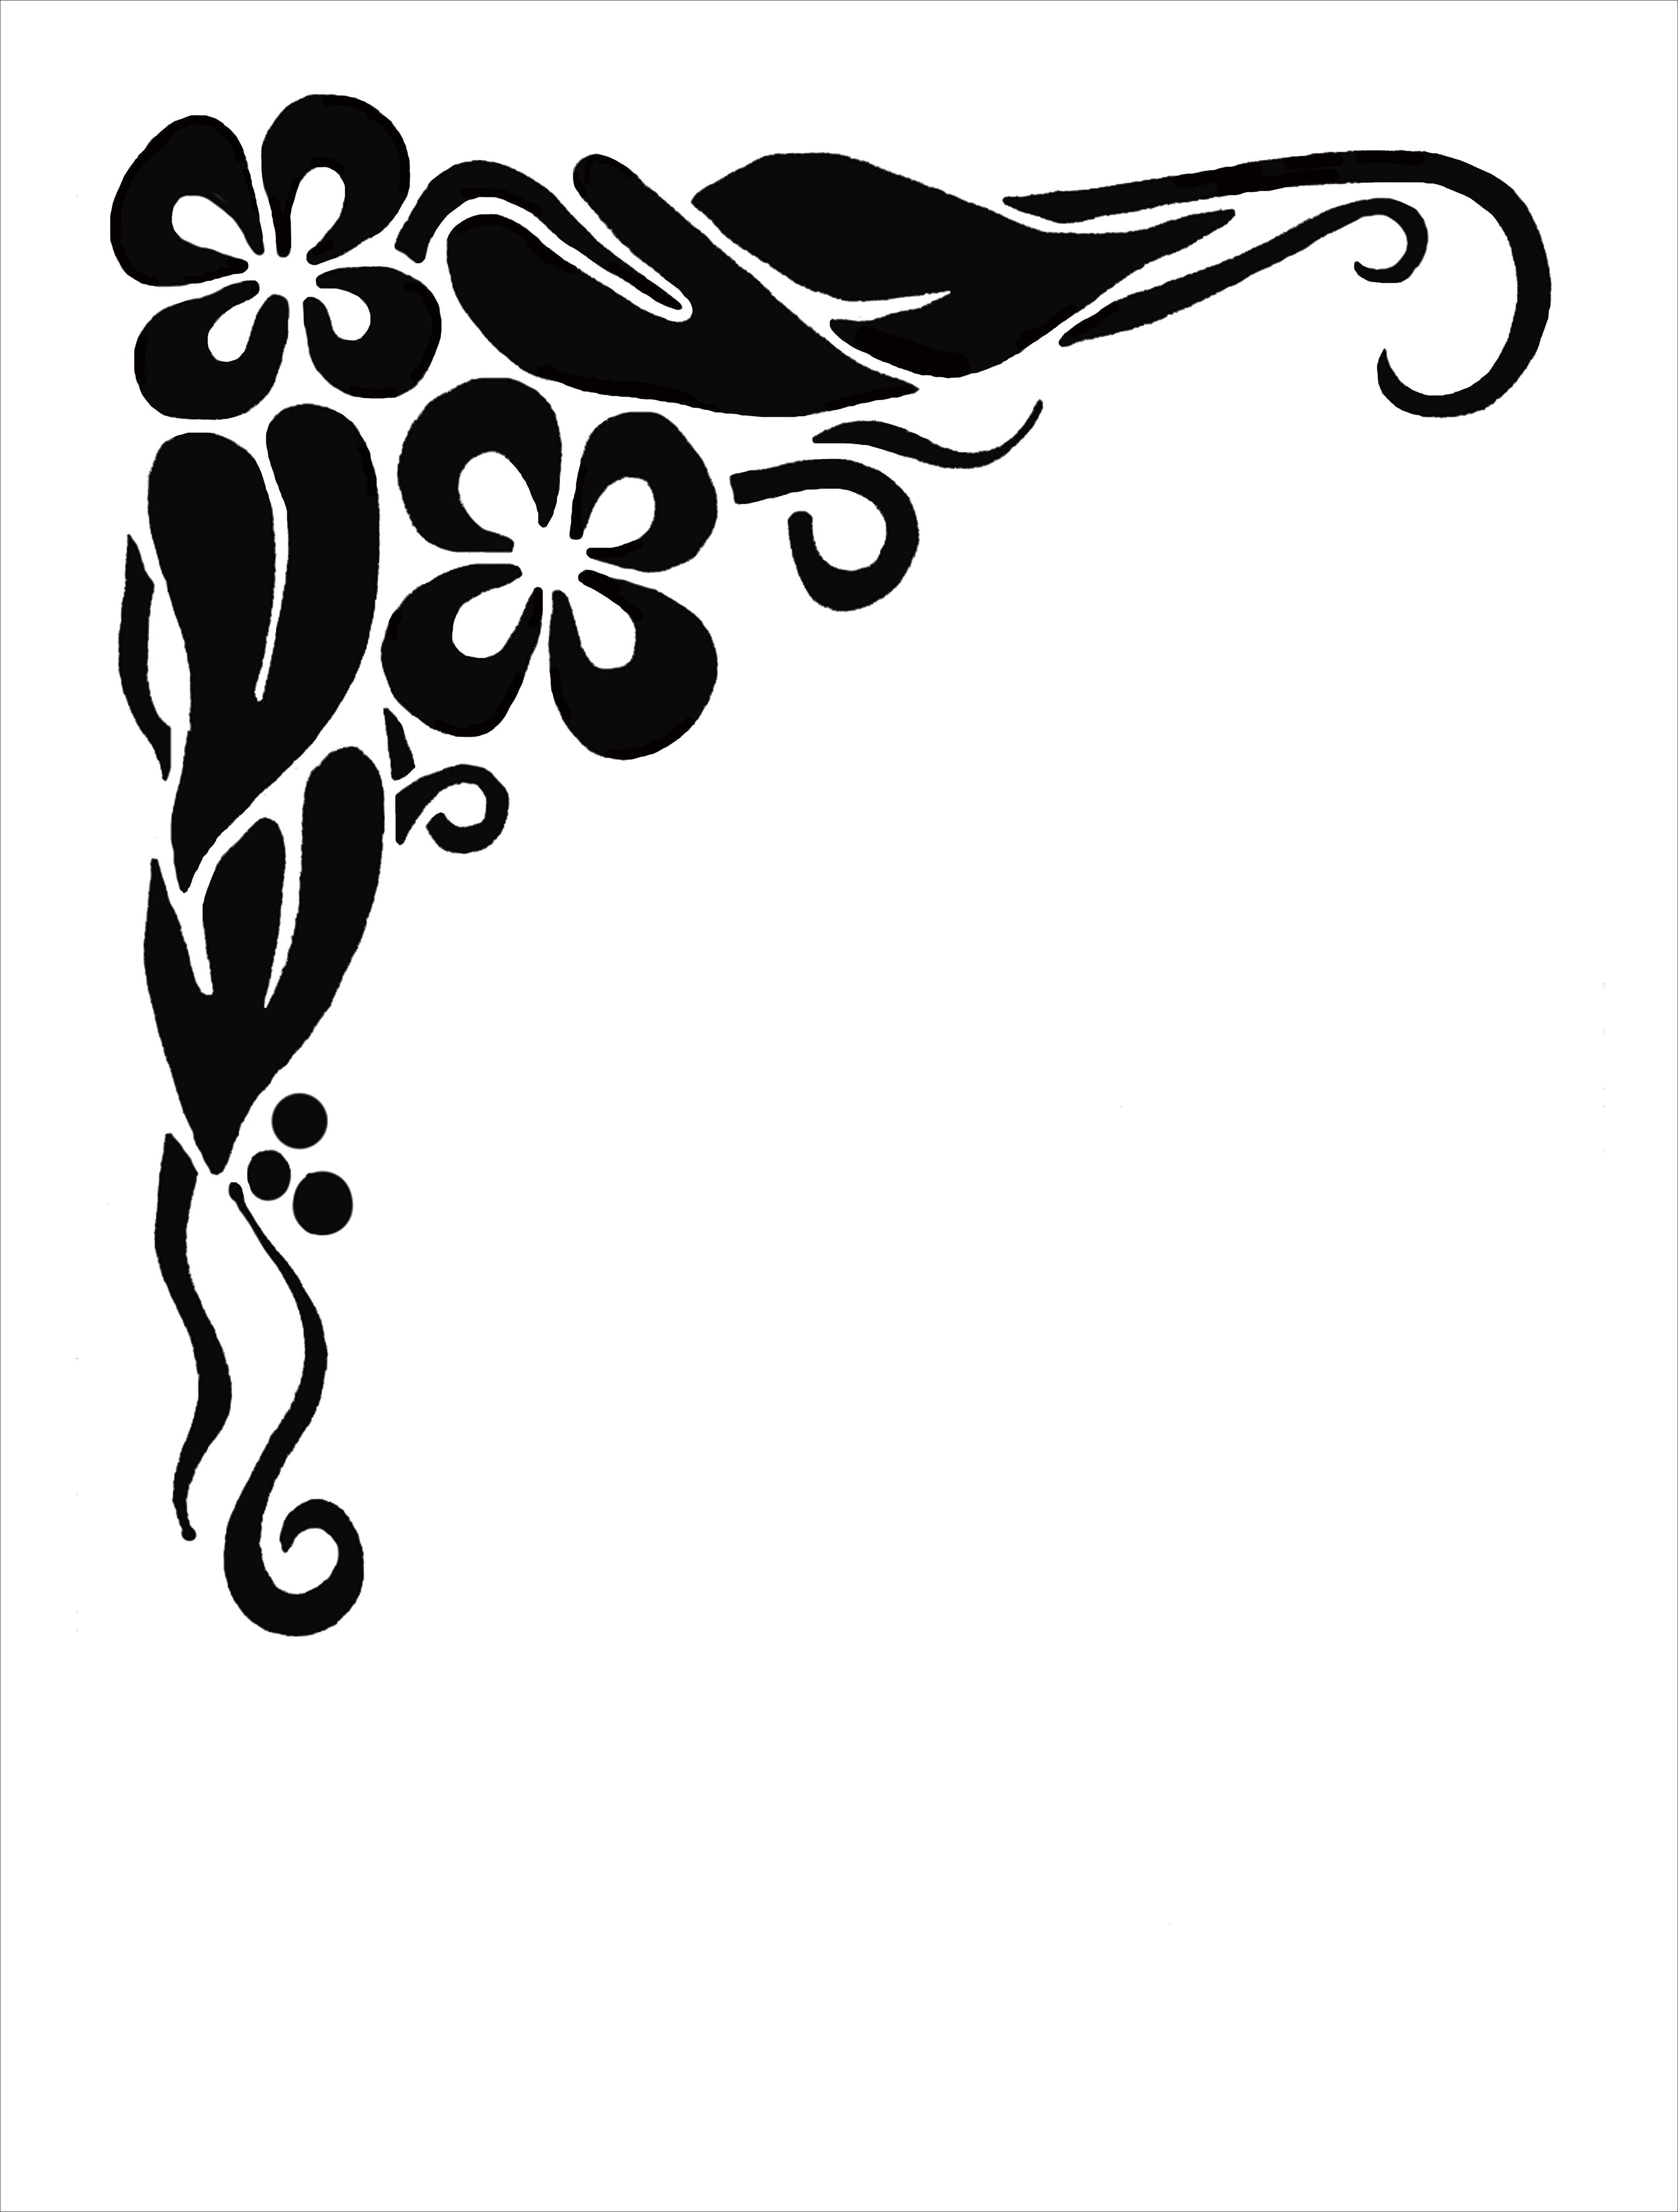 Wedding Clipart Black And White Border | Free download on ...